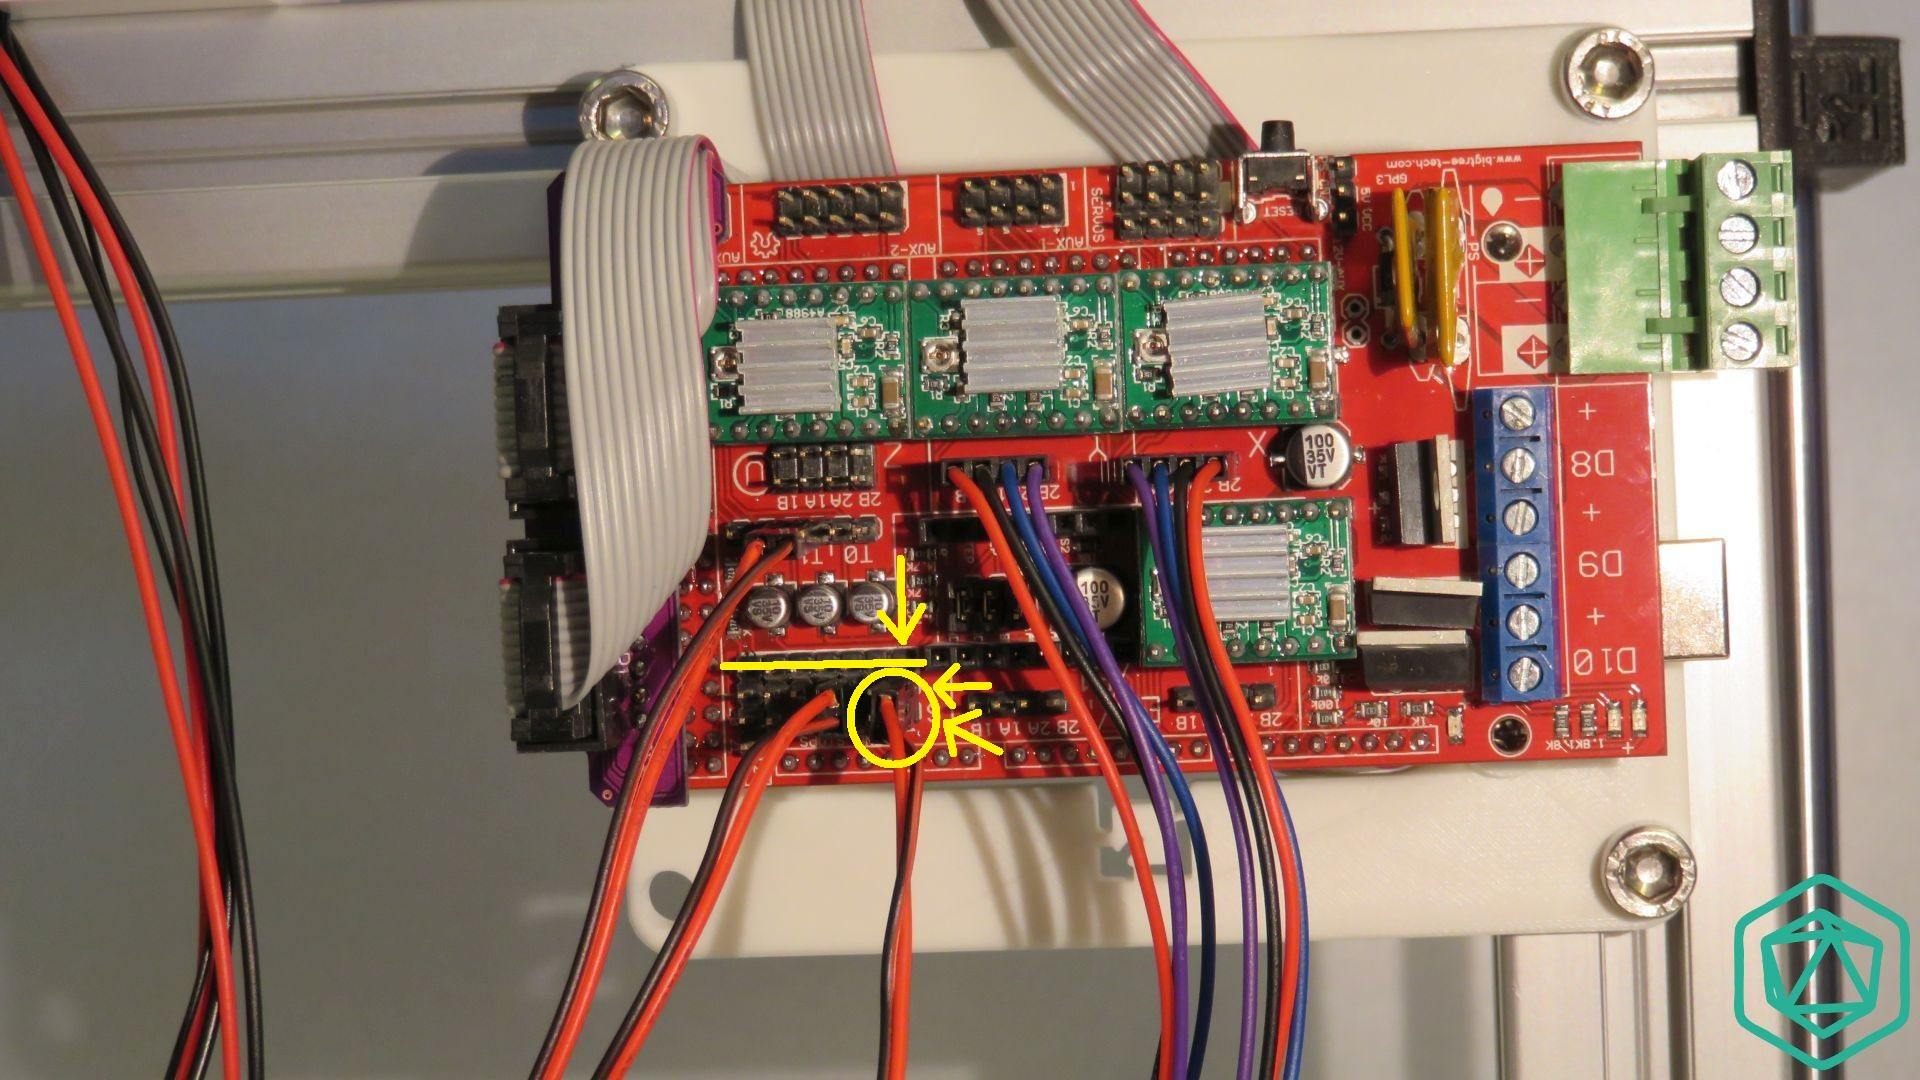 Ramps 1.4 Archives - 3D Modular Systems - Ramps 1.4 Wiring Diagram